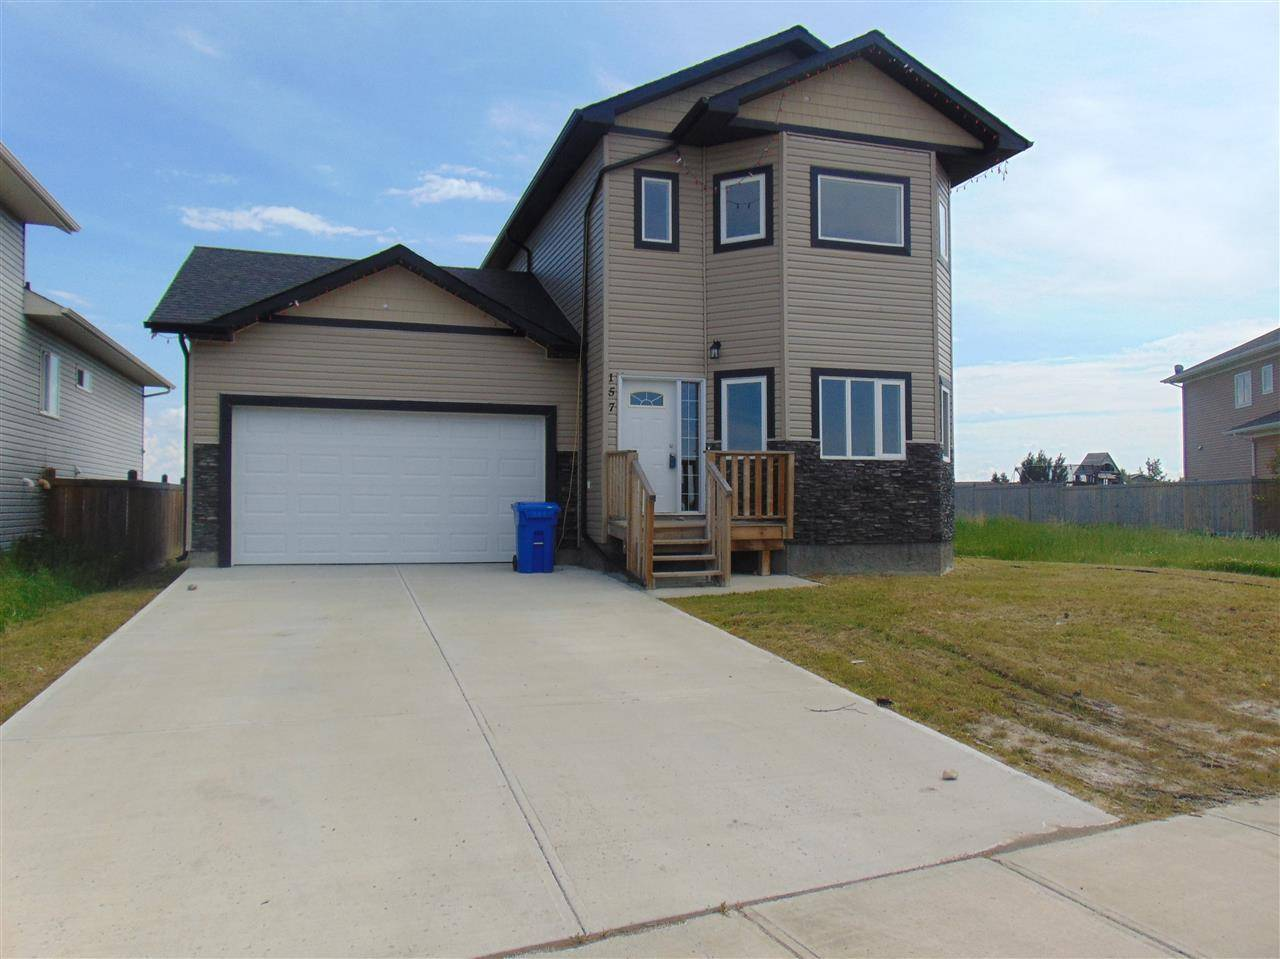 House for sale at 157 Cypress Dr Wetaskiwin Alberta - MLS: E4168889